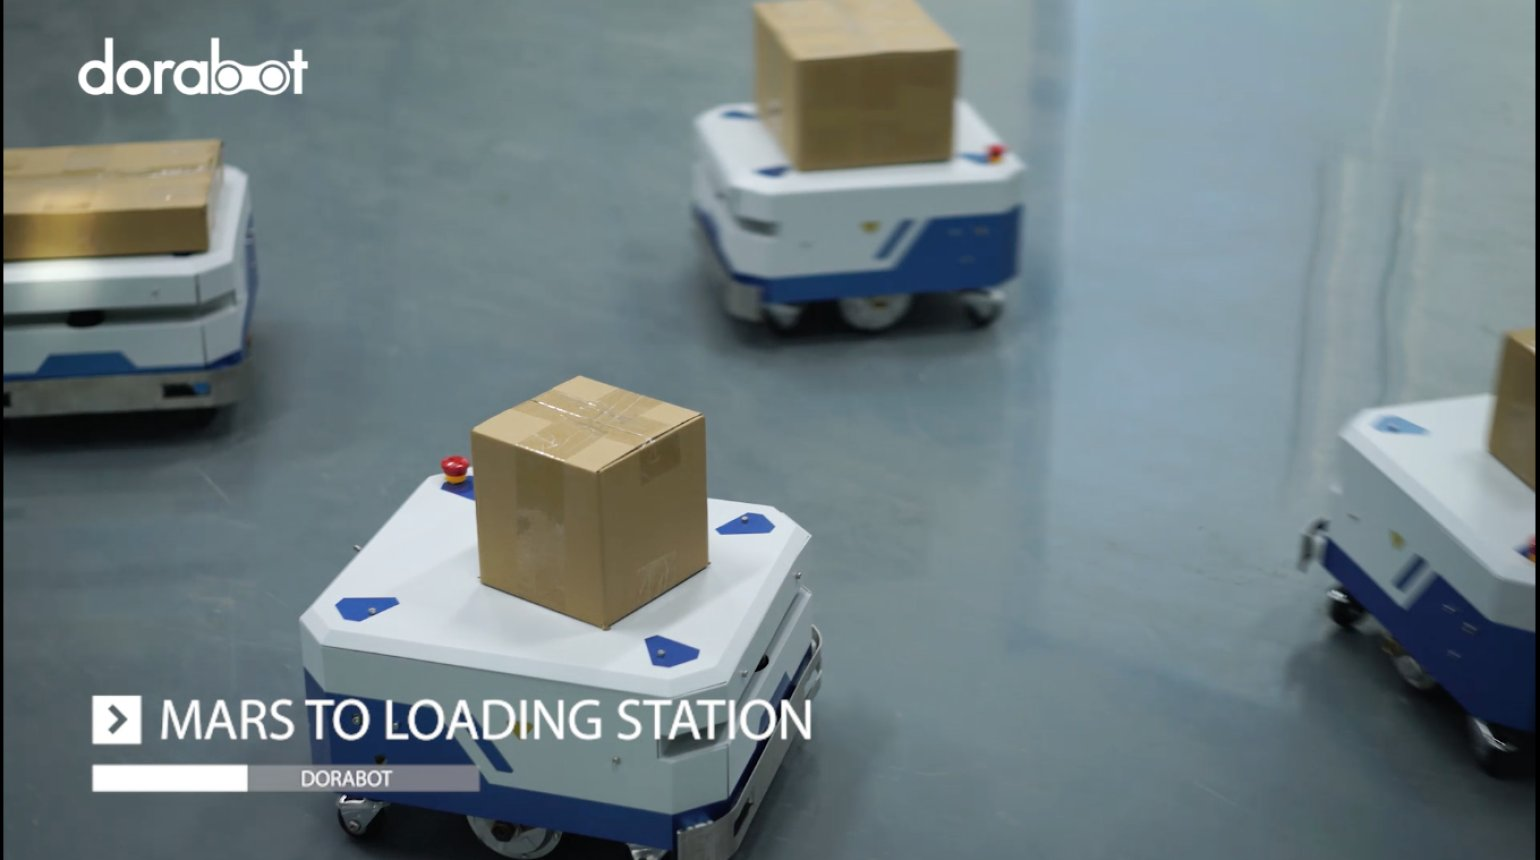 Dorabot: Products & Solutions Promo Trailer